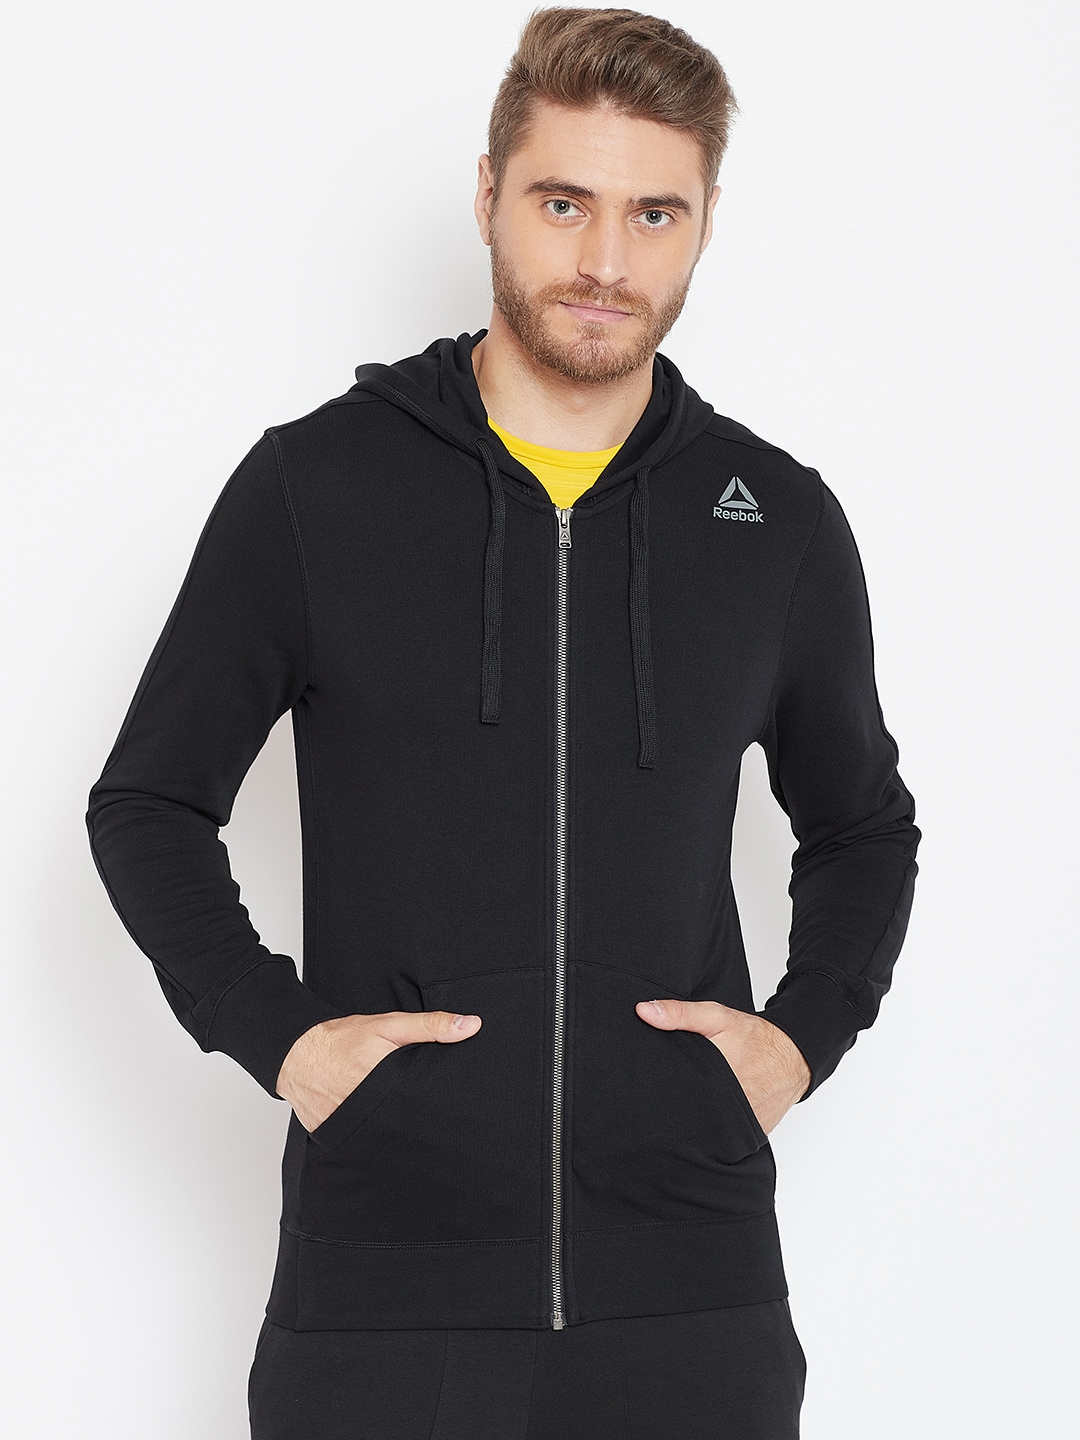 3a576b18 Reebok Men Black Solid Training Essentials FZ Hooded Sweatshirt